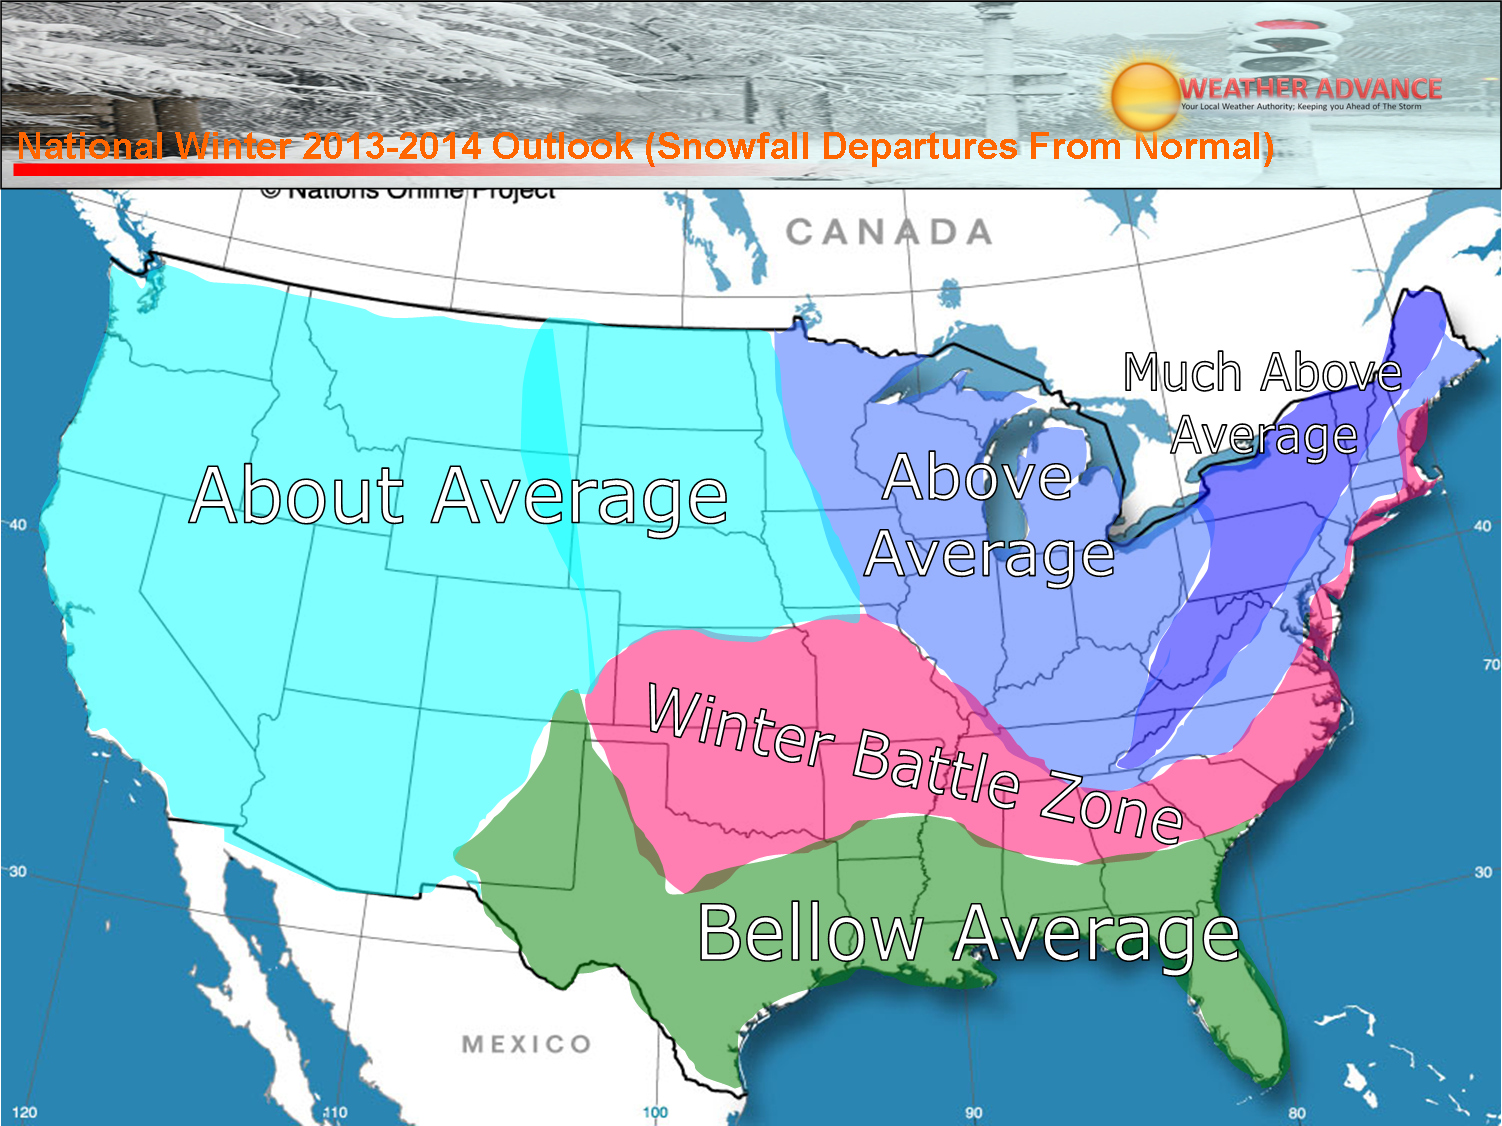 Weatheradvance Com Winter Weather Snowfall Forecast For 2014